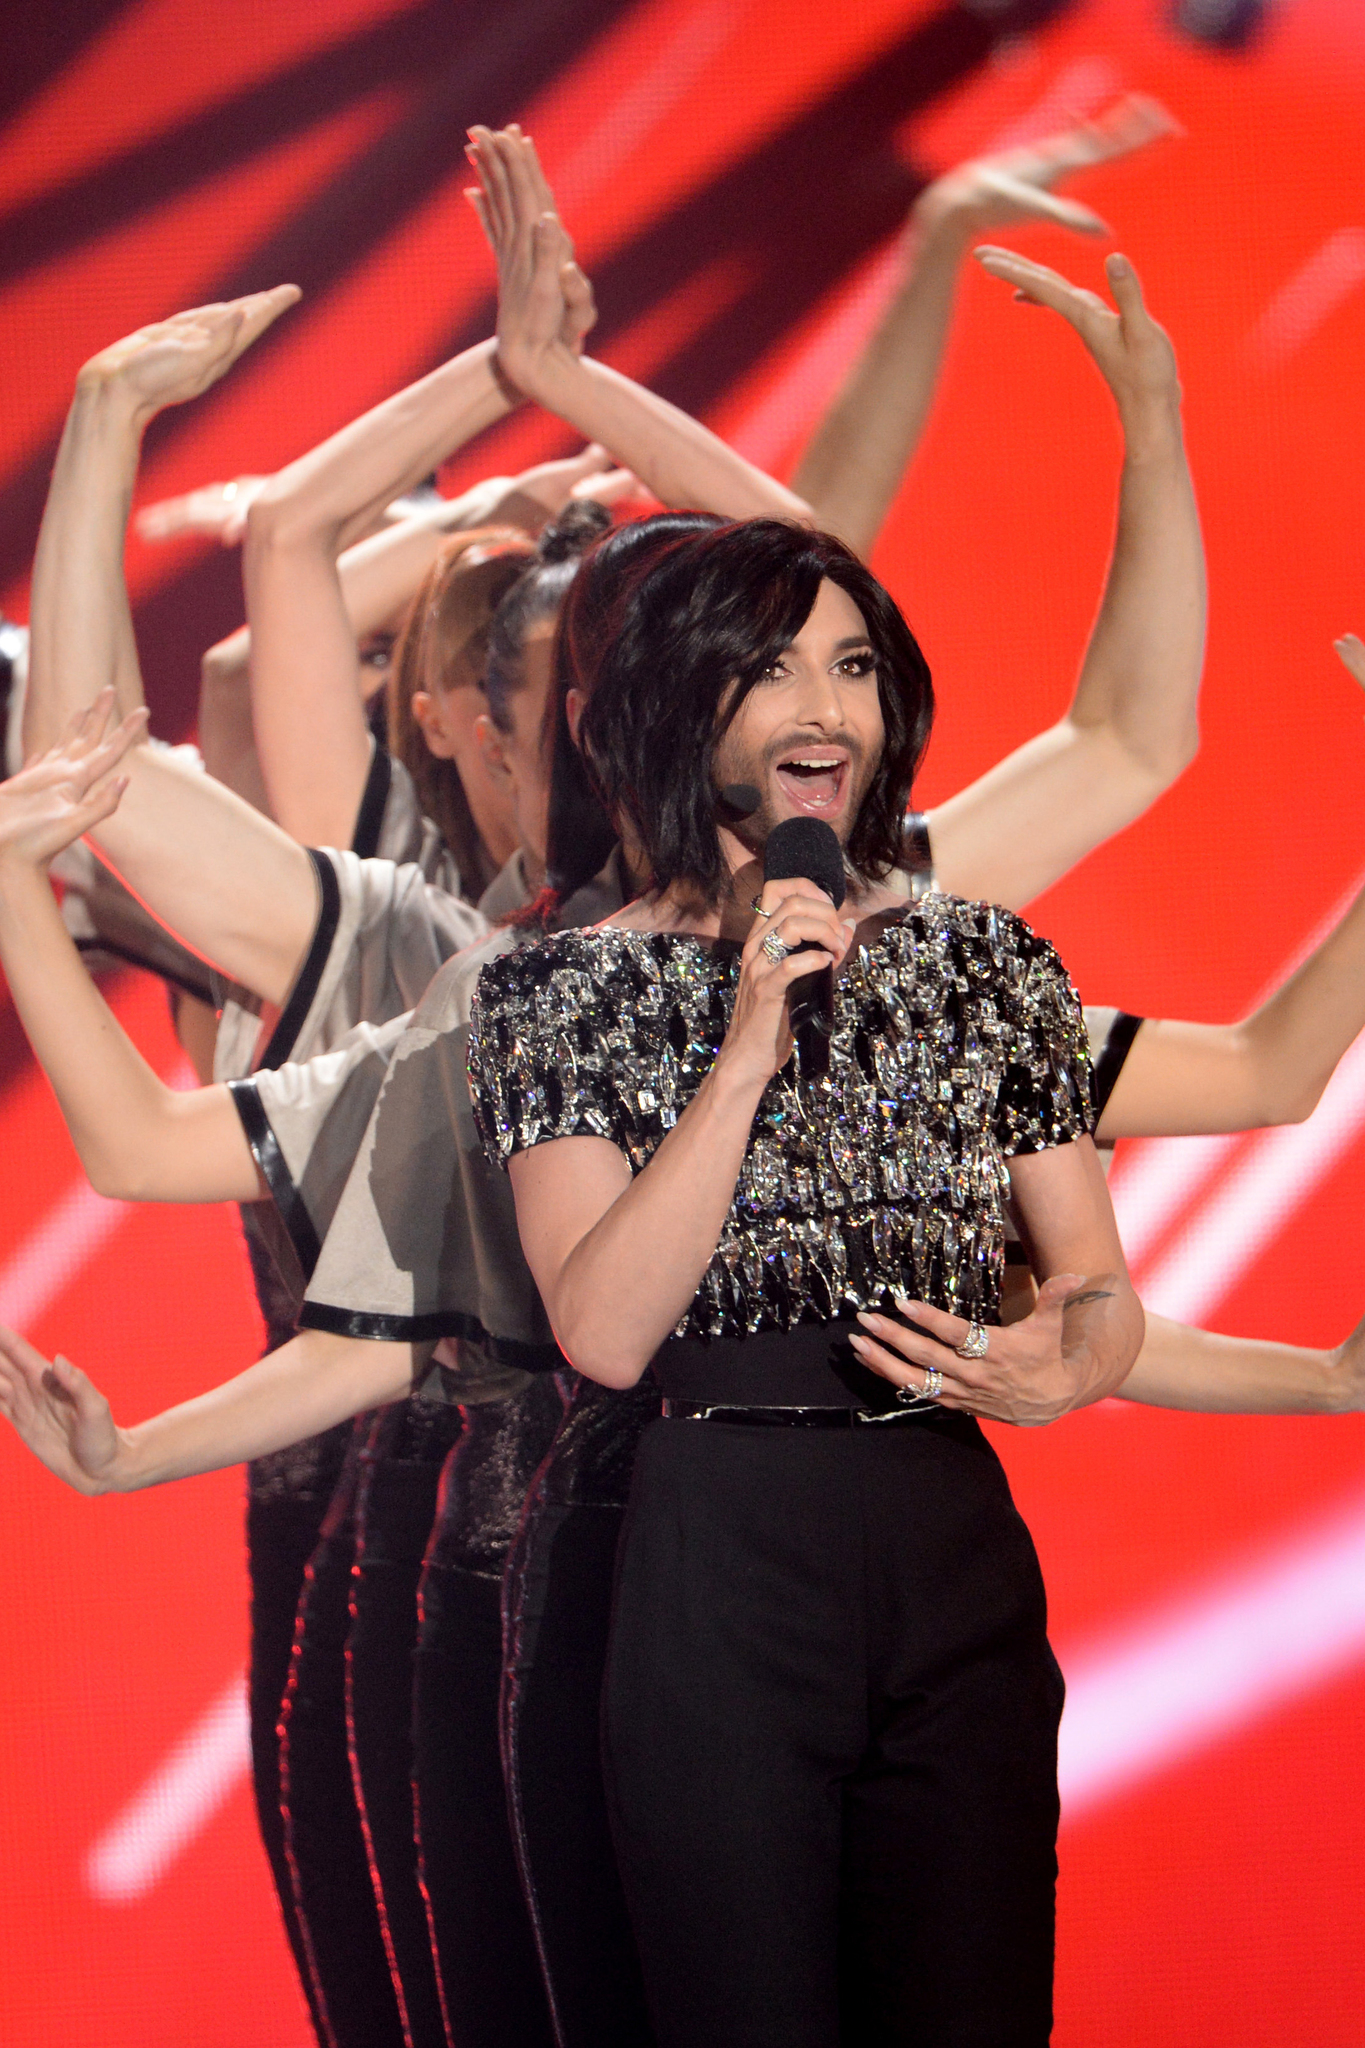 Conchita Wurst performs during the opening of the Grand Final of the 60th Eurovision Song Contest 2015 in Vienna, Austria, 23 May 2015.